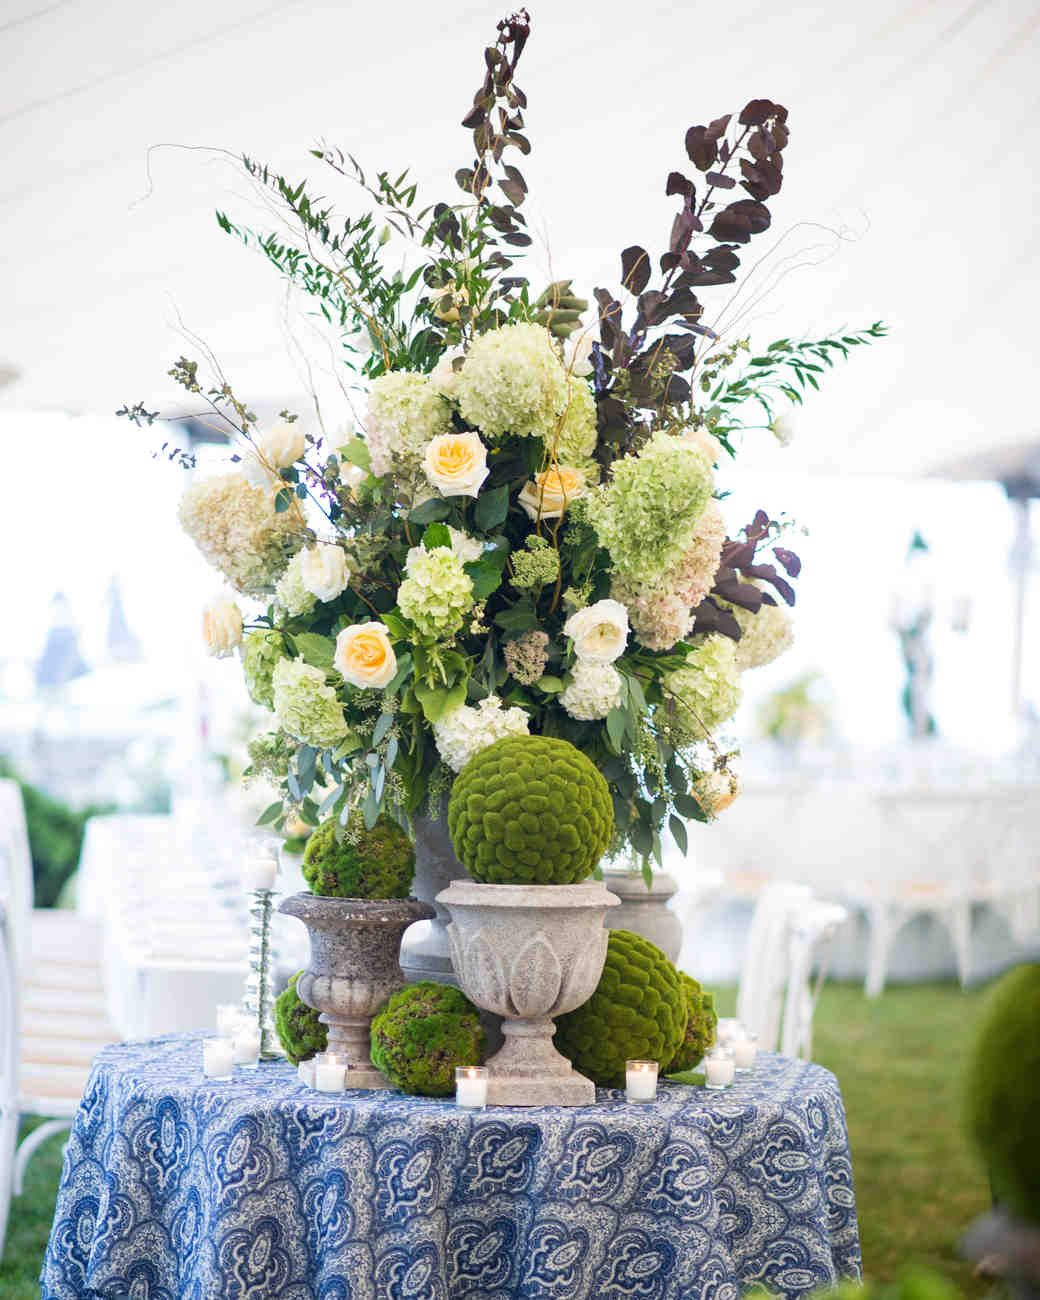 Wedding decoration ideas in the house  We kept going back to this oldworld eleganceud the bride says of